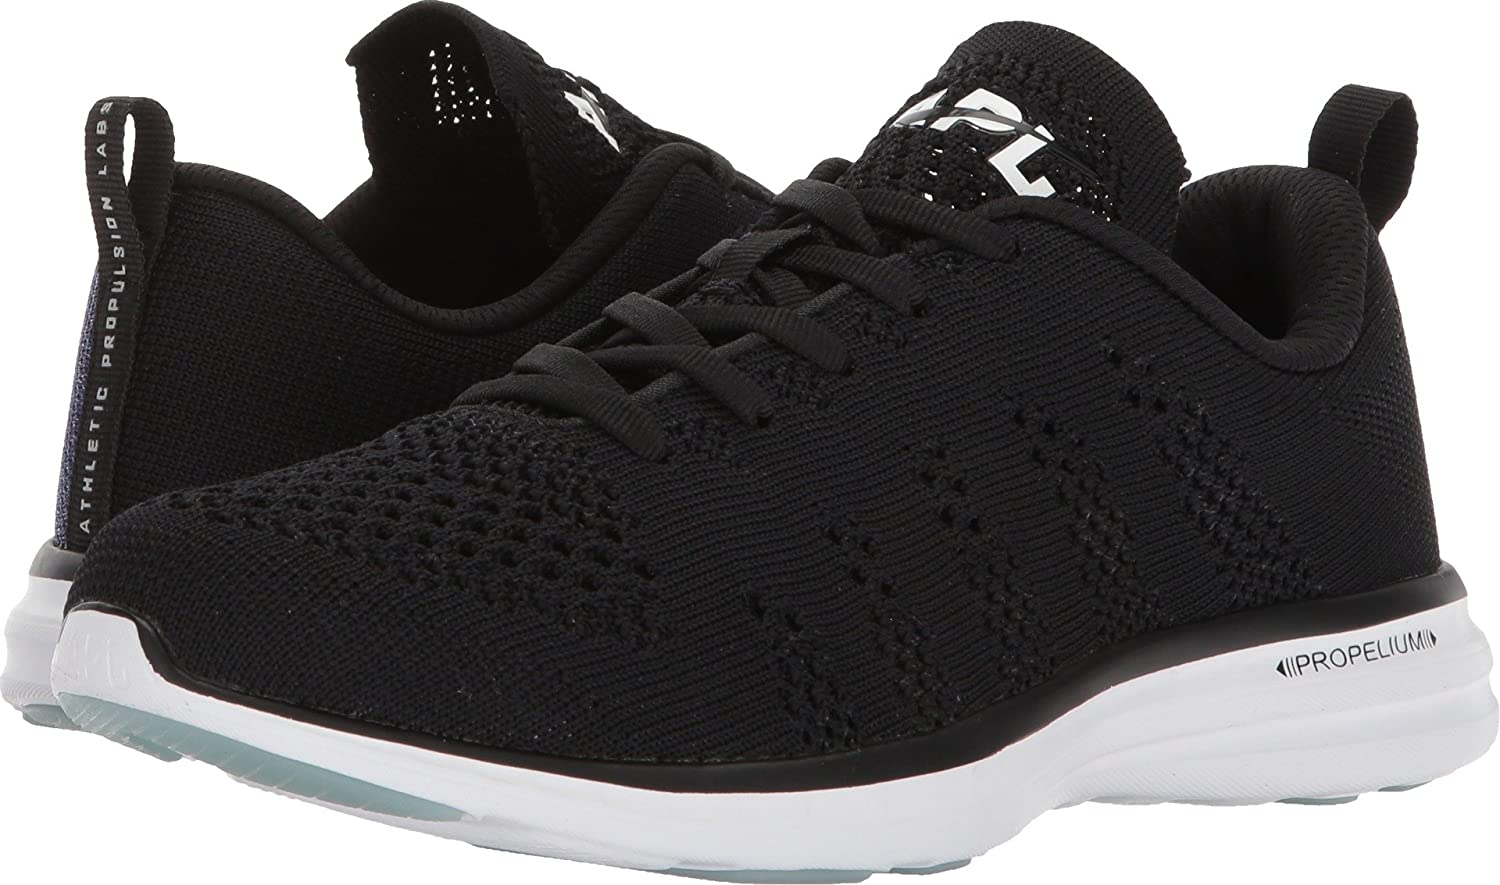 APL: Athletic Propulsion Labs Women's Techloom Pro Sneakers B075FWNWXB 5 B(M) US|Black/Iridescent